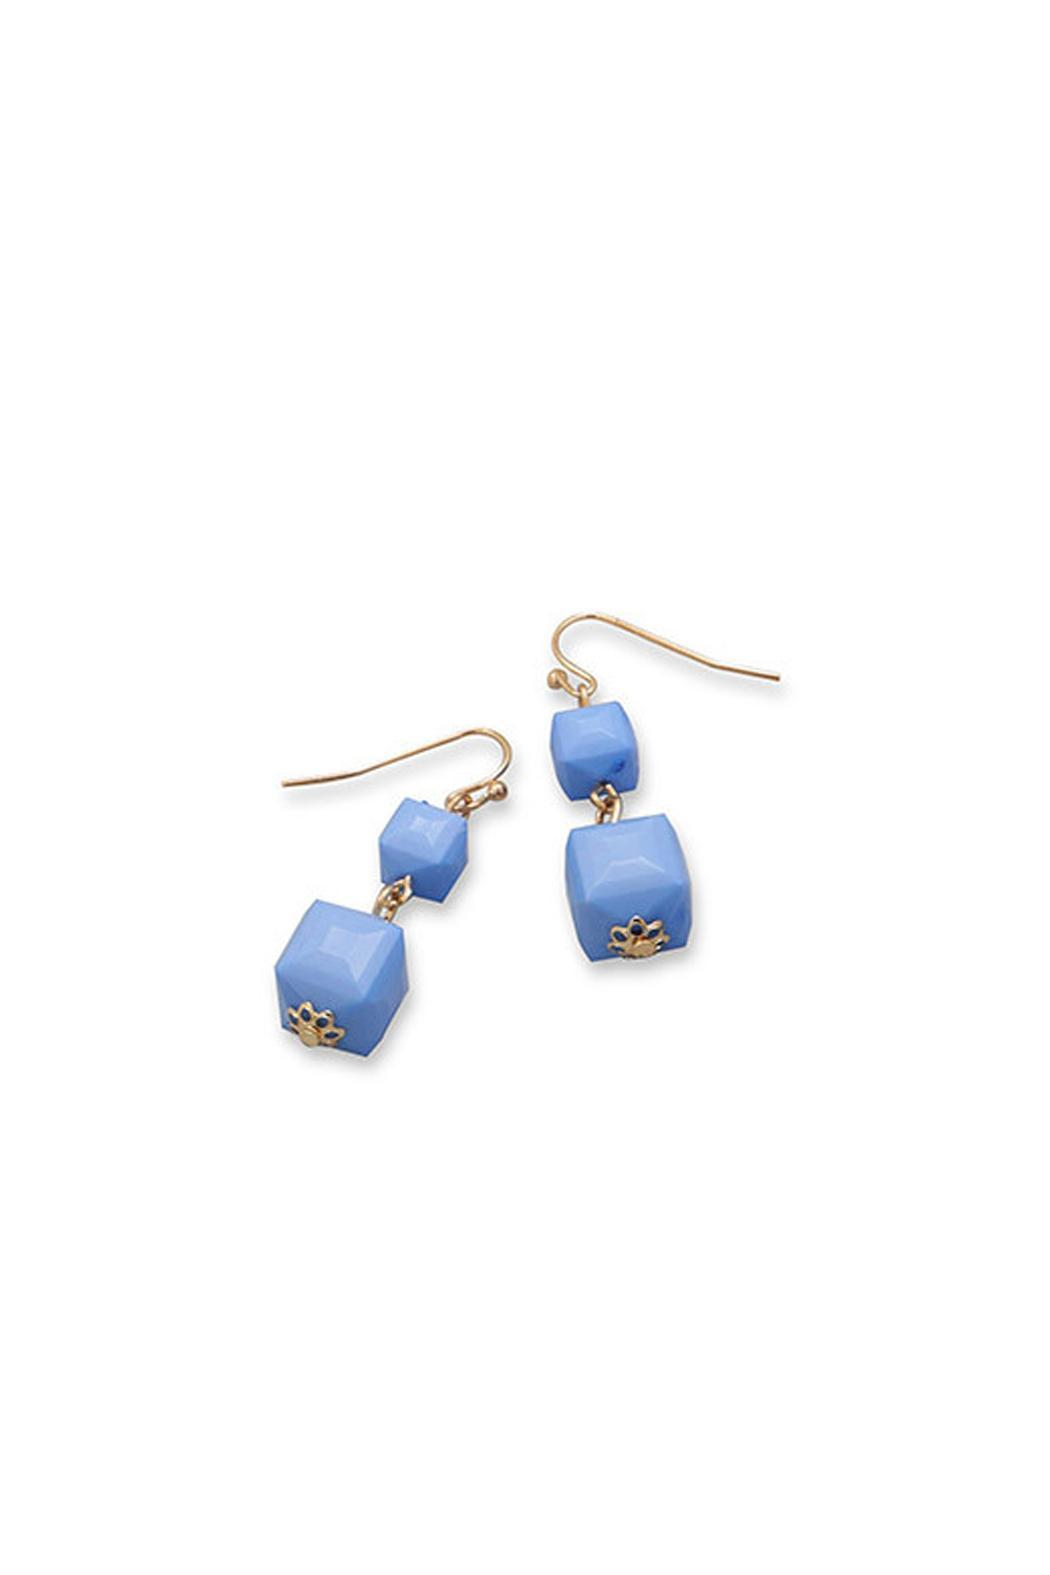 Wild Lilies Jewelry  Periwinkle Cube Earrings - Main Image